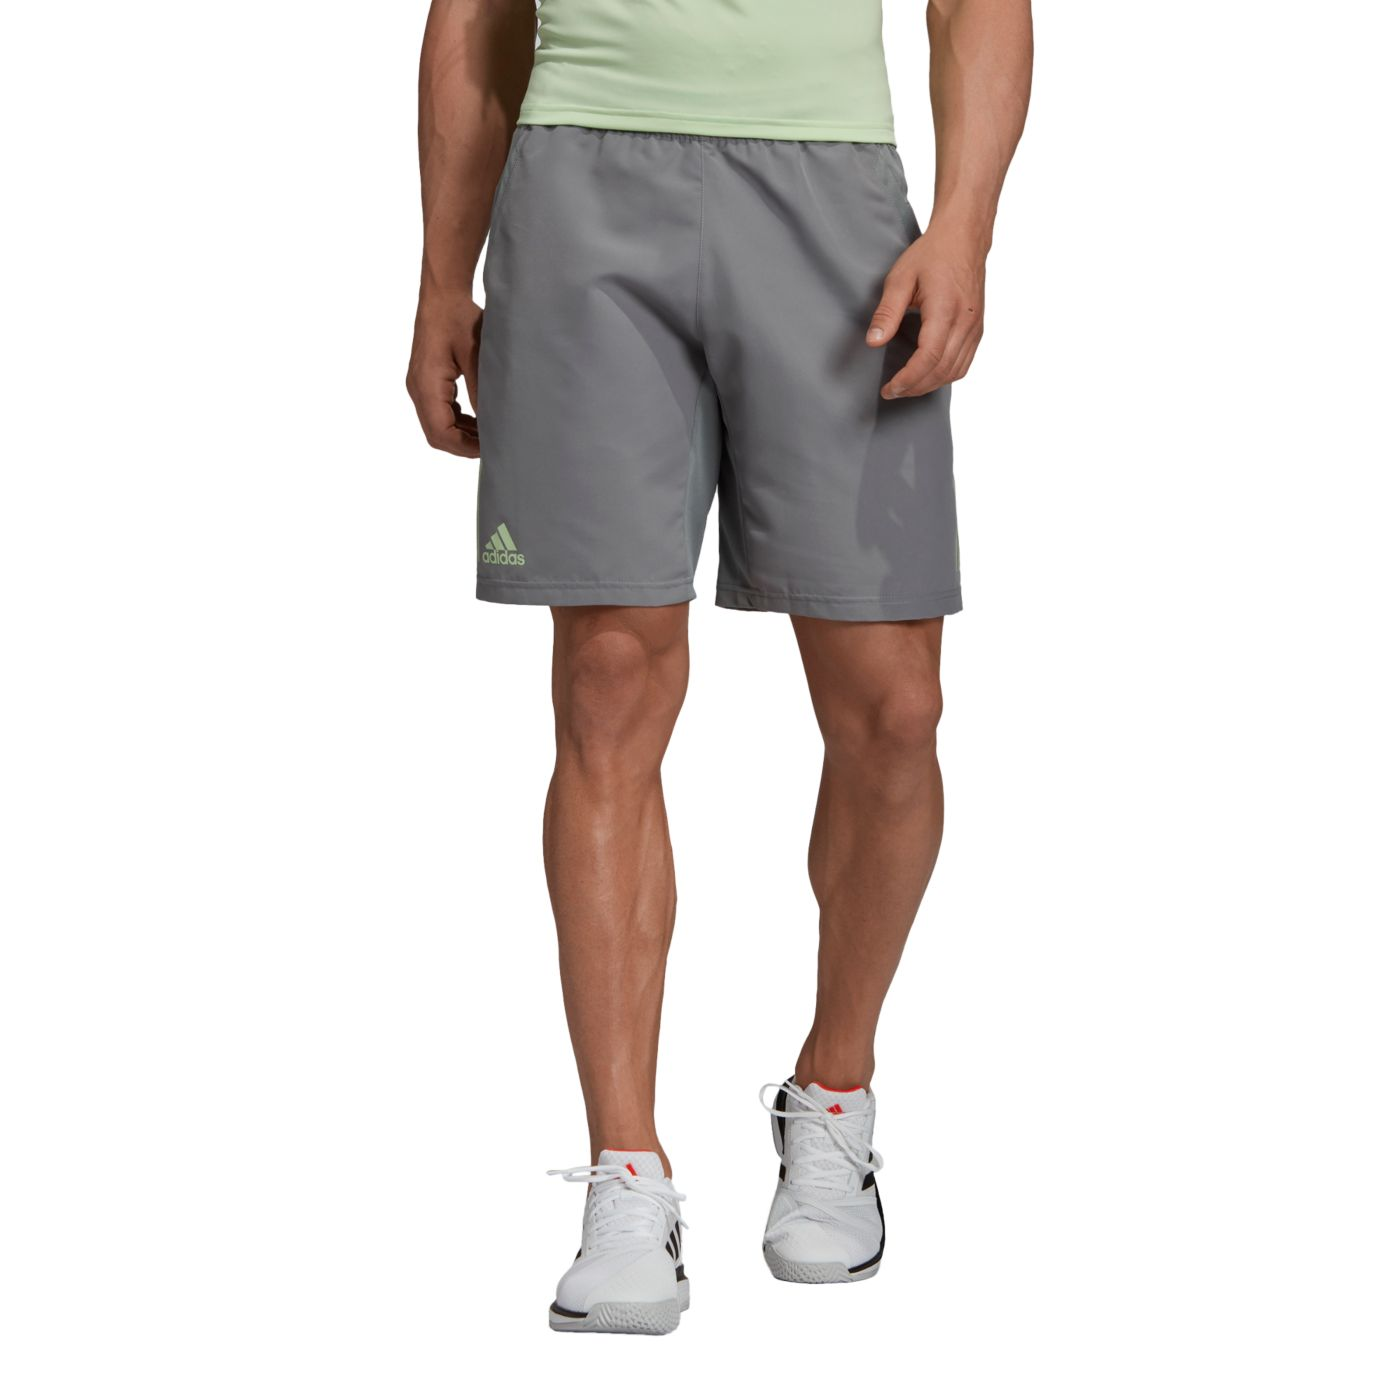 adidas Men's Club 3 Stripes Tennis Shorts